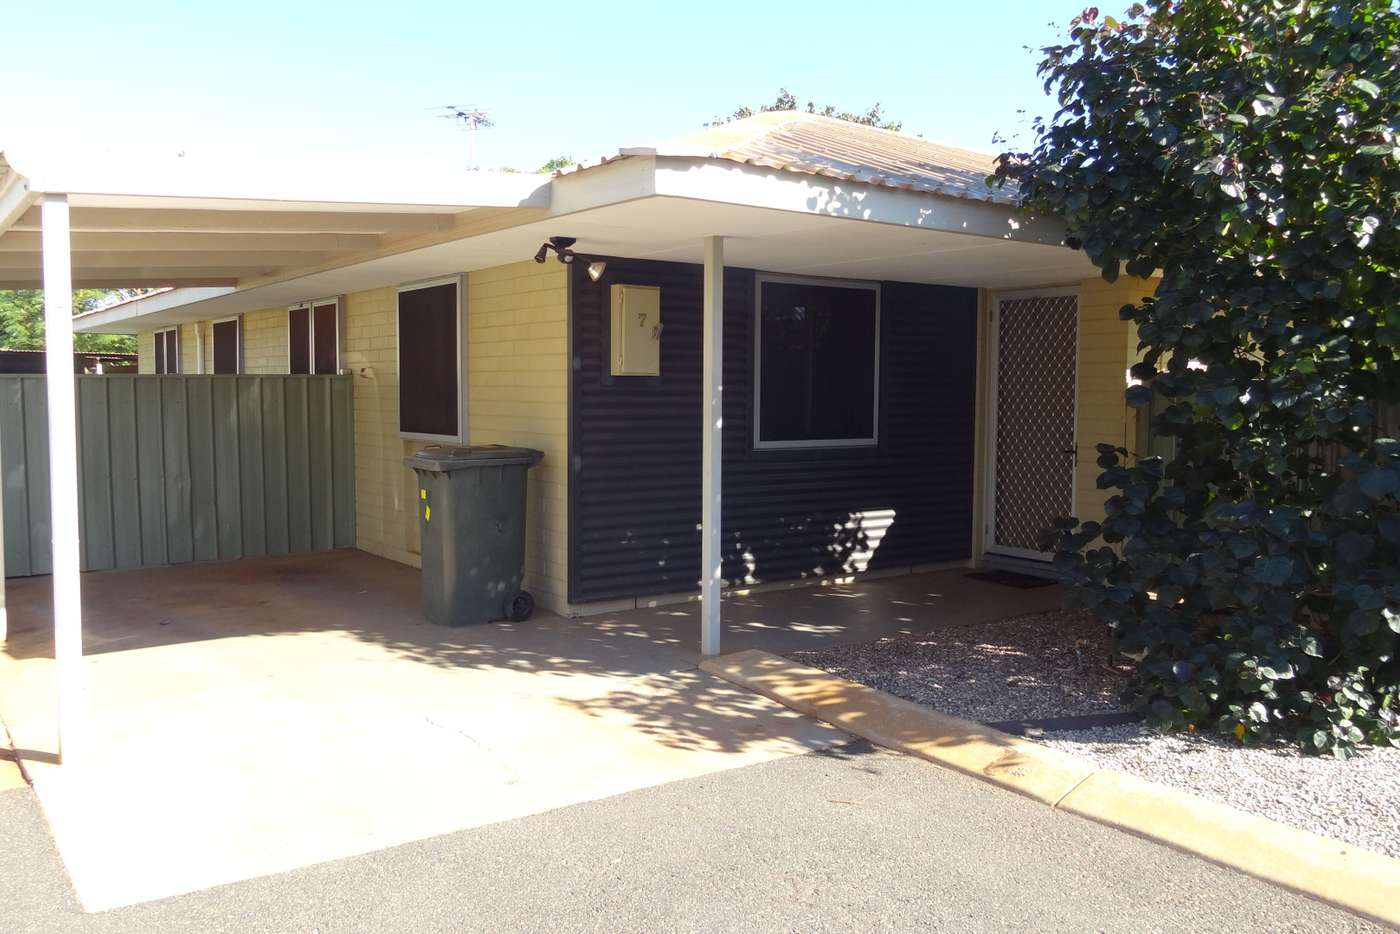 Main view of Homely house listing, 7/23 Daylesford Close, South Hedland WA 6722